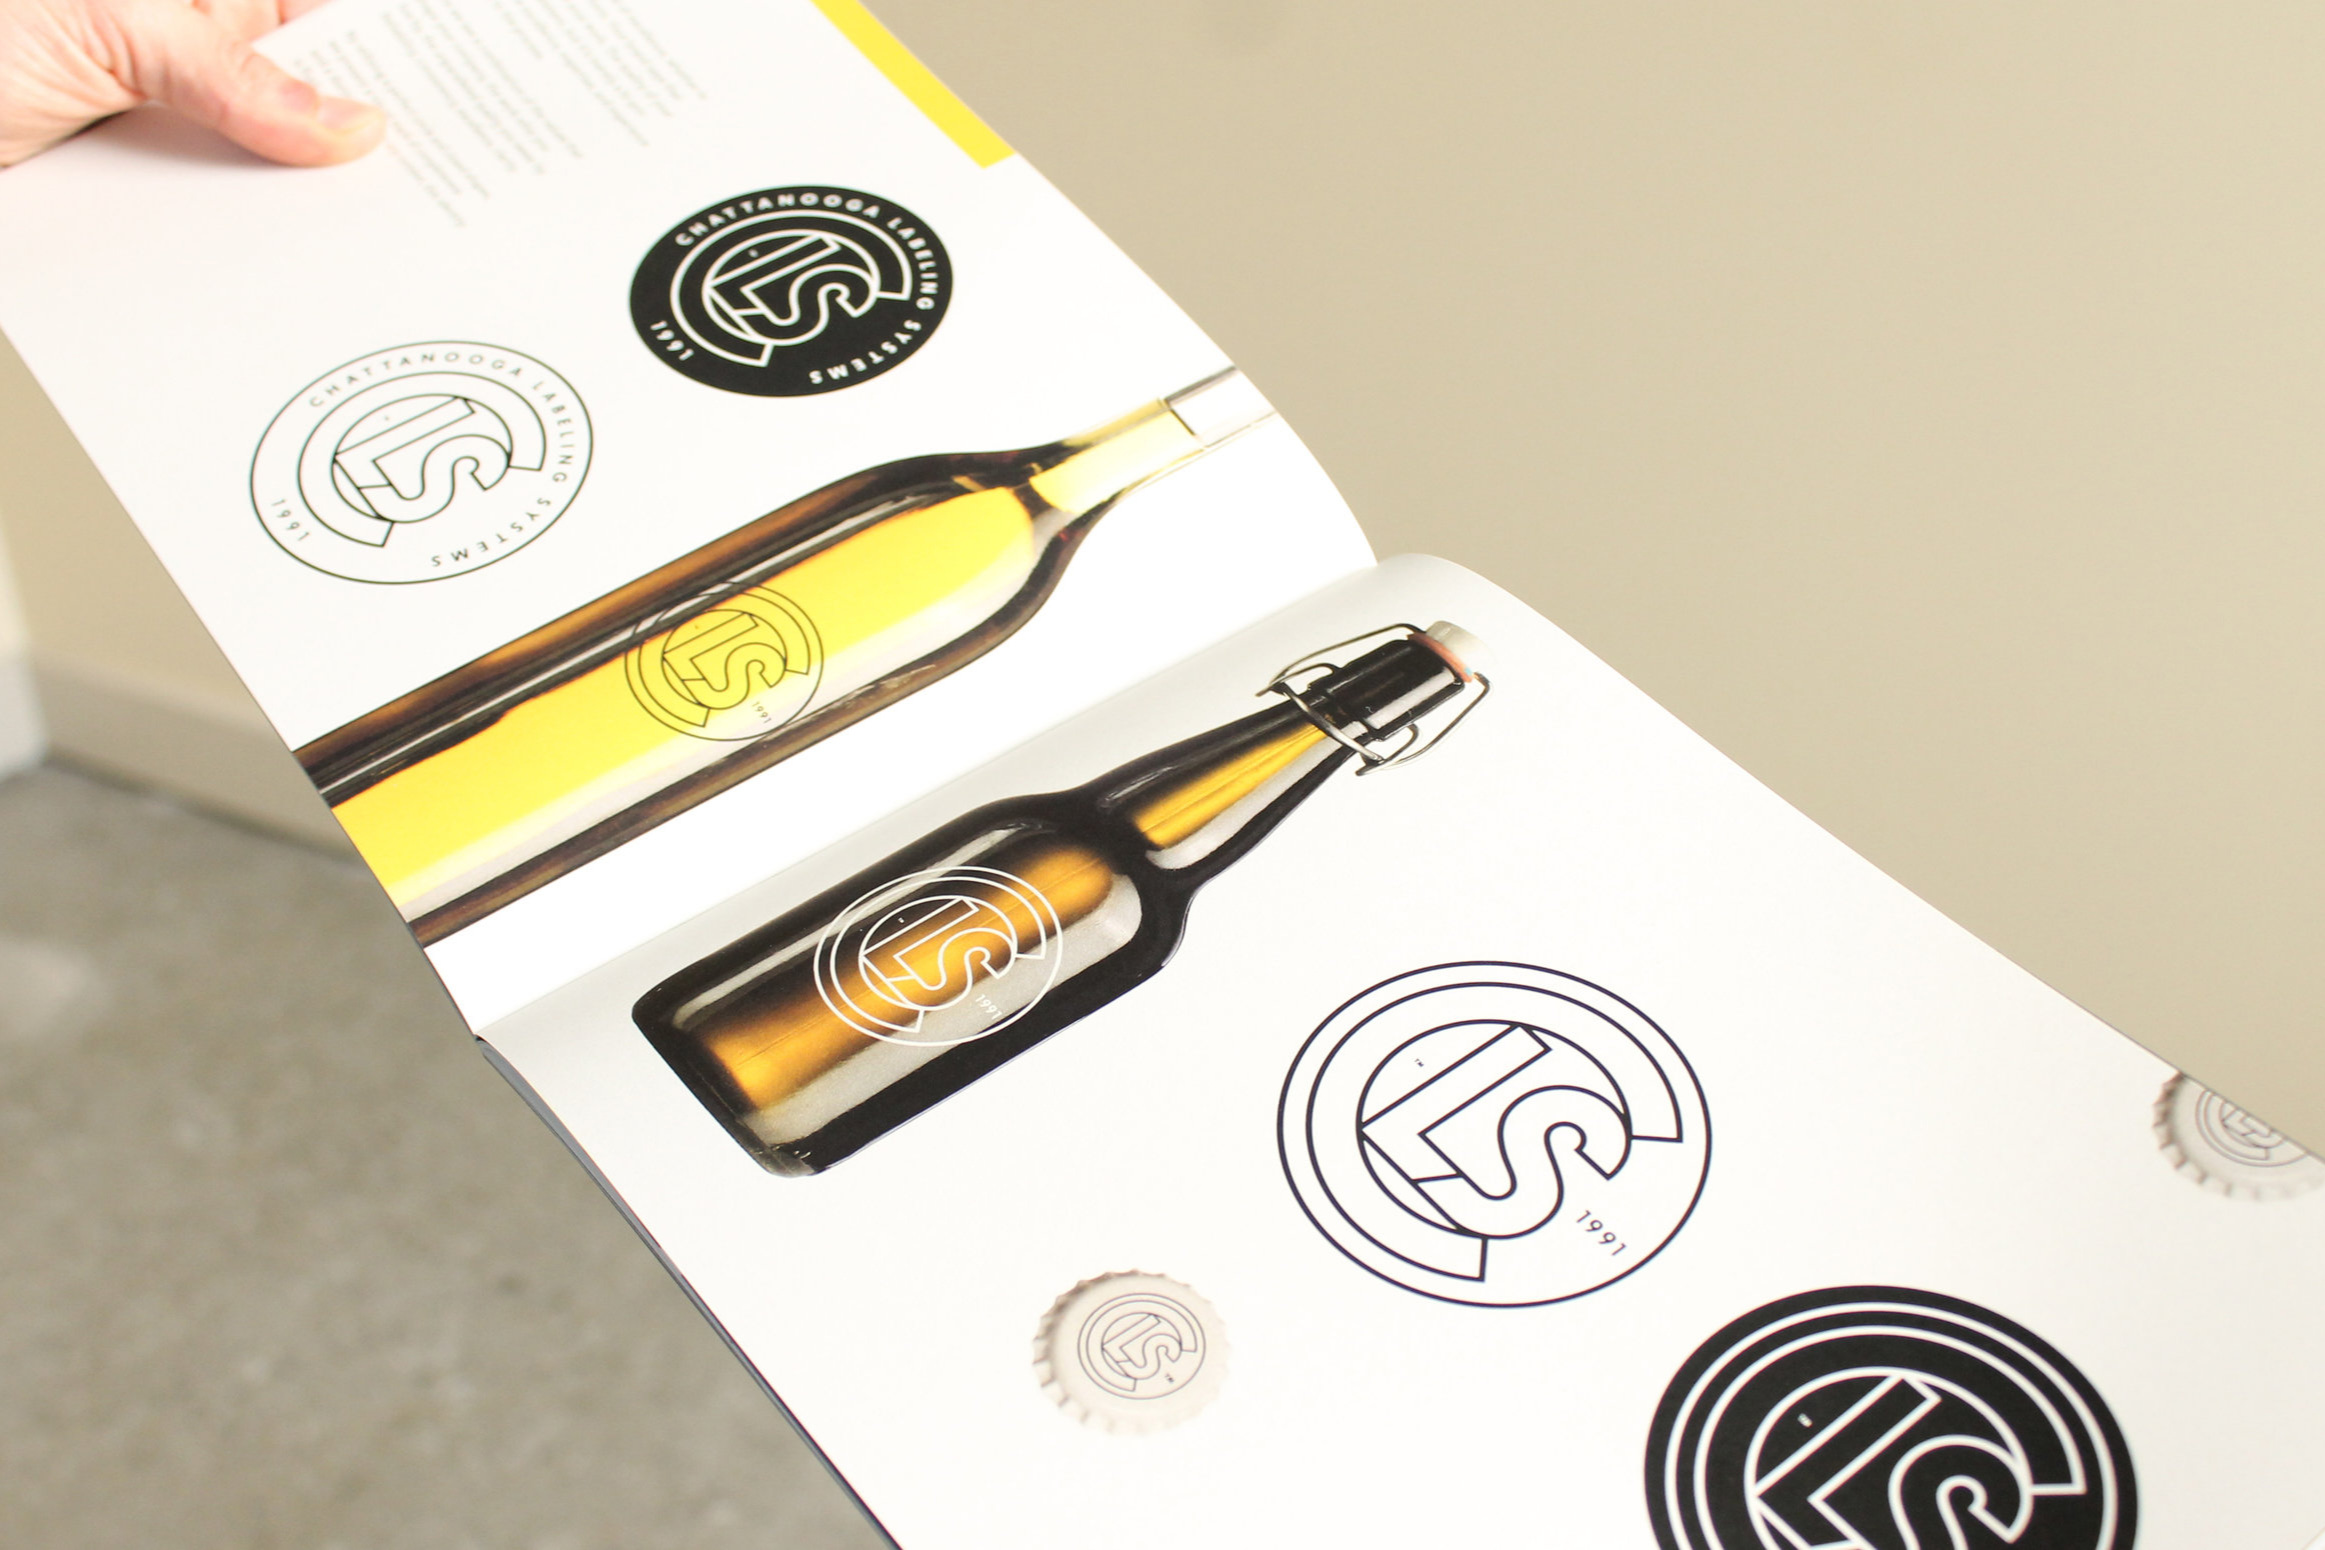 Chattanooga Labeling Systems Brand Identity Guidelines